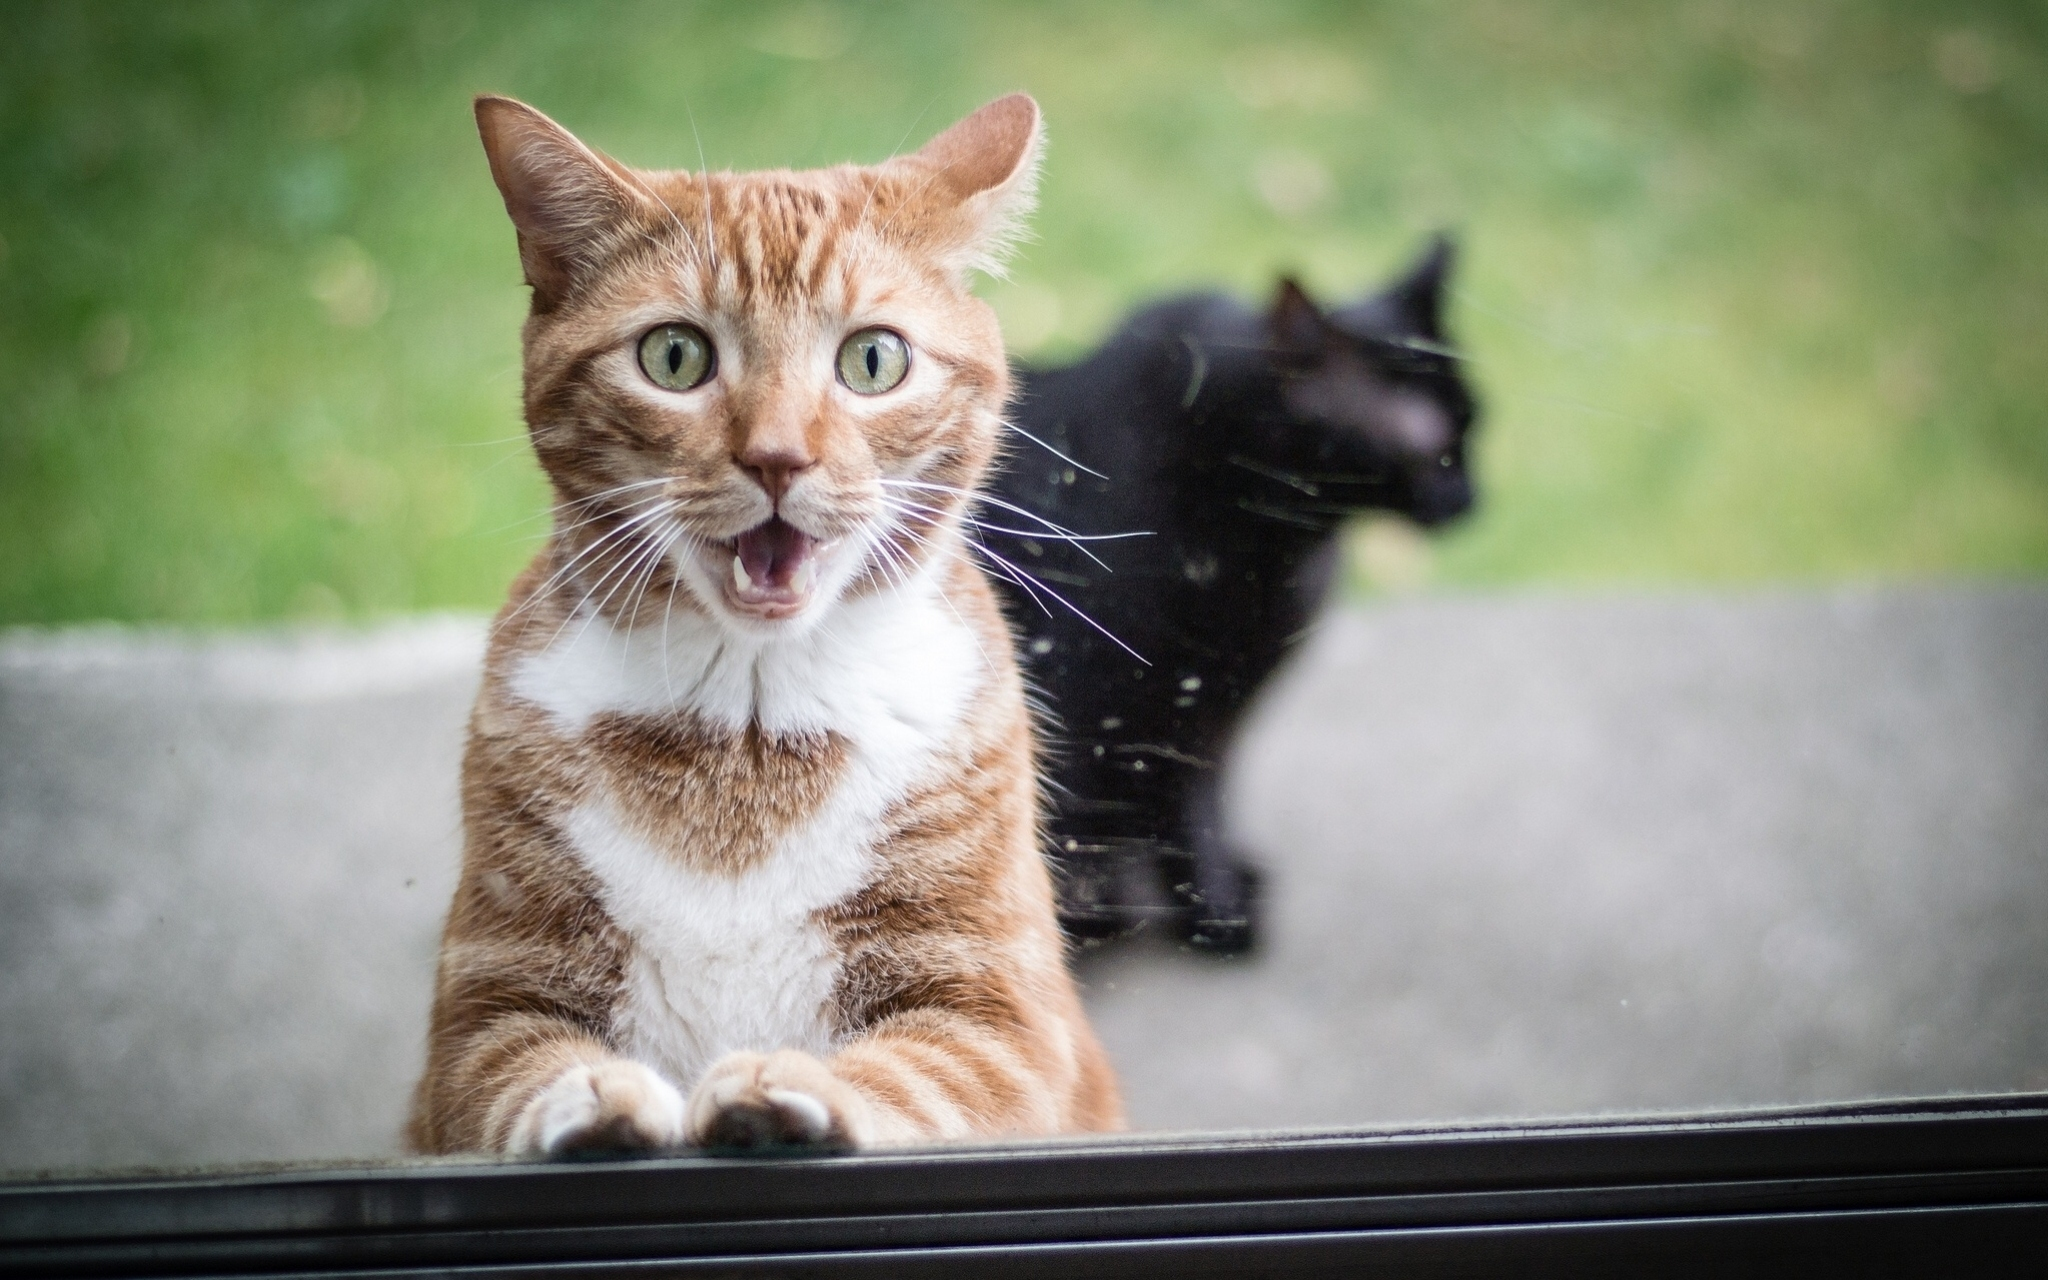 Animals___Cats__Surprised_red_cat_and_black_cat_044831_